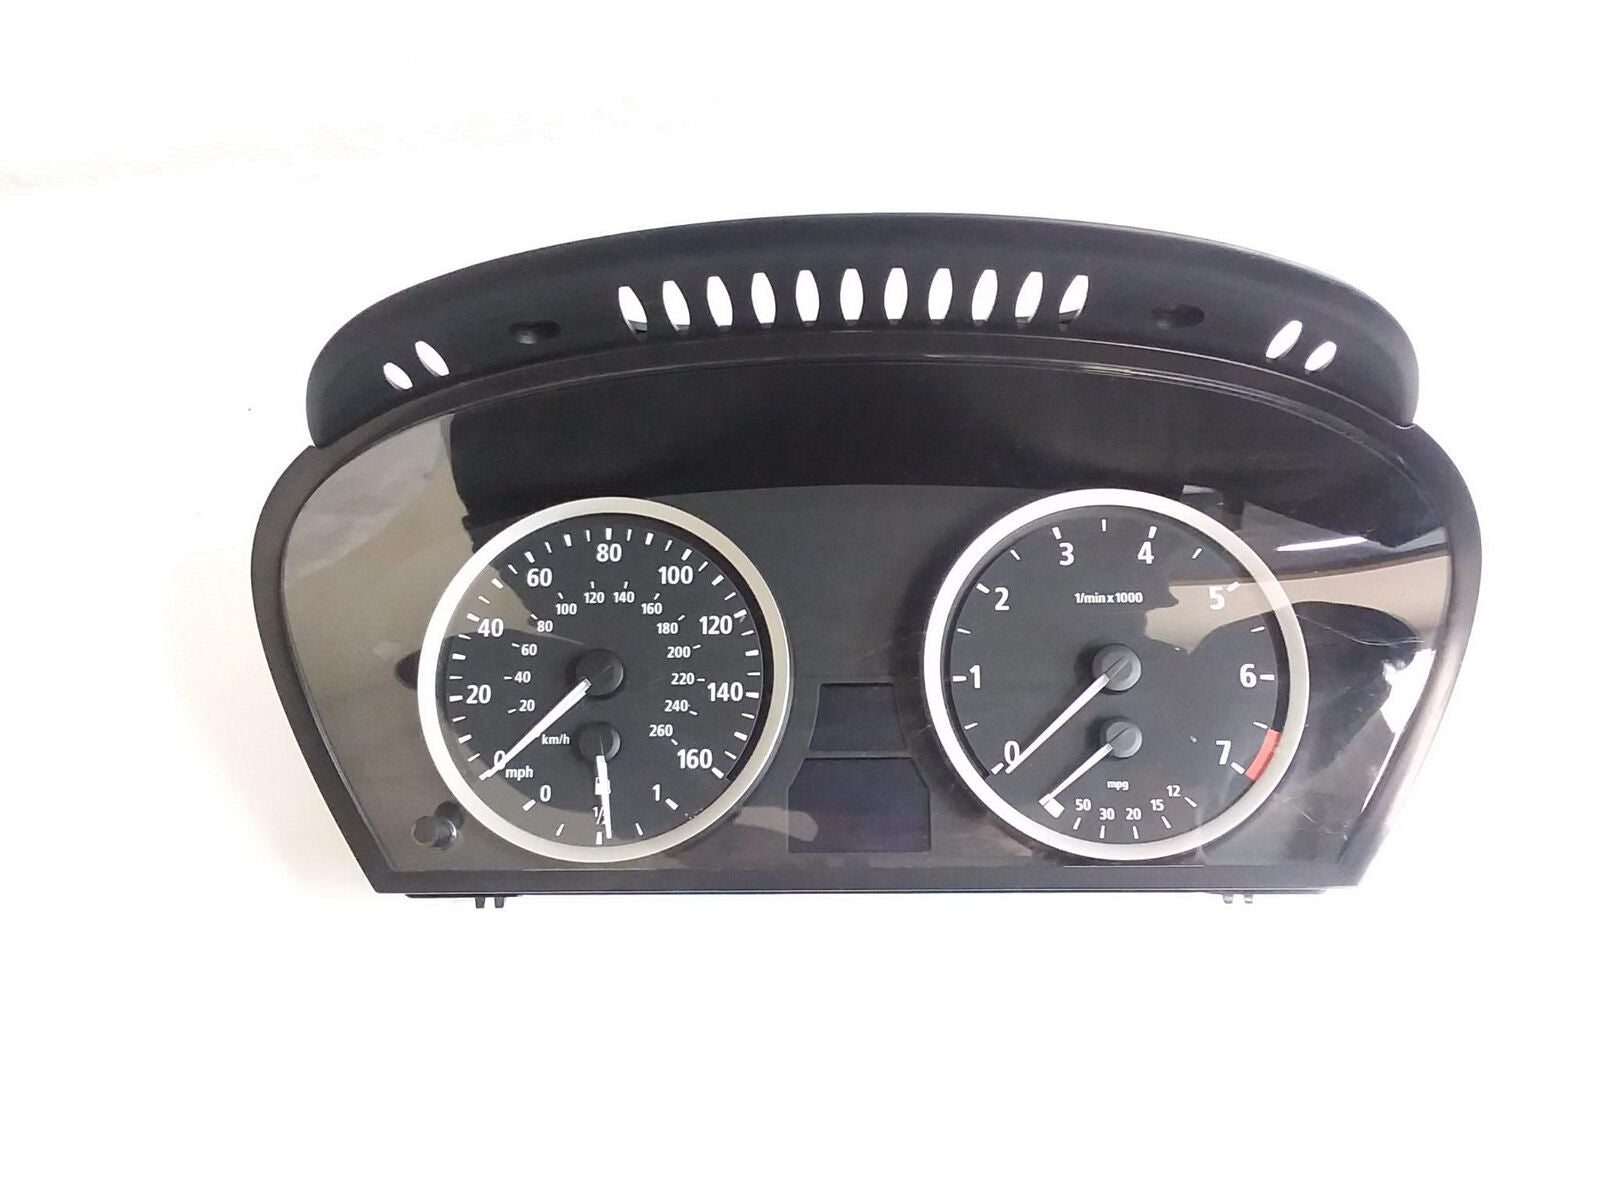 2004-2010 BMW E60 E61 SMG INSTRUMENT CLUSTER GAUGE SPEEDOMETER ODOMETER OEM - Click Receive Auto Parts